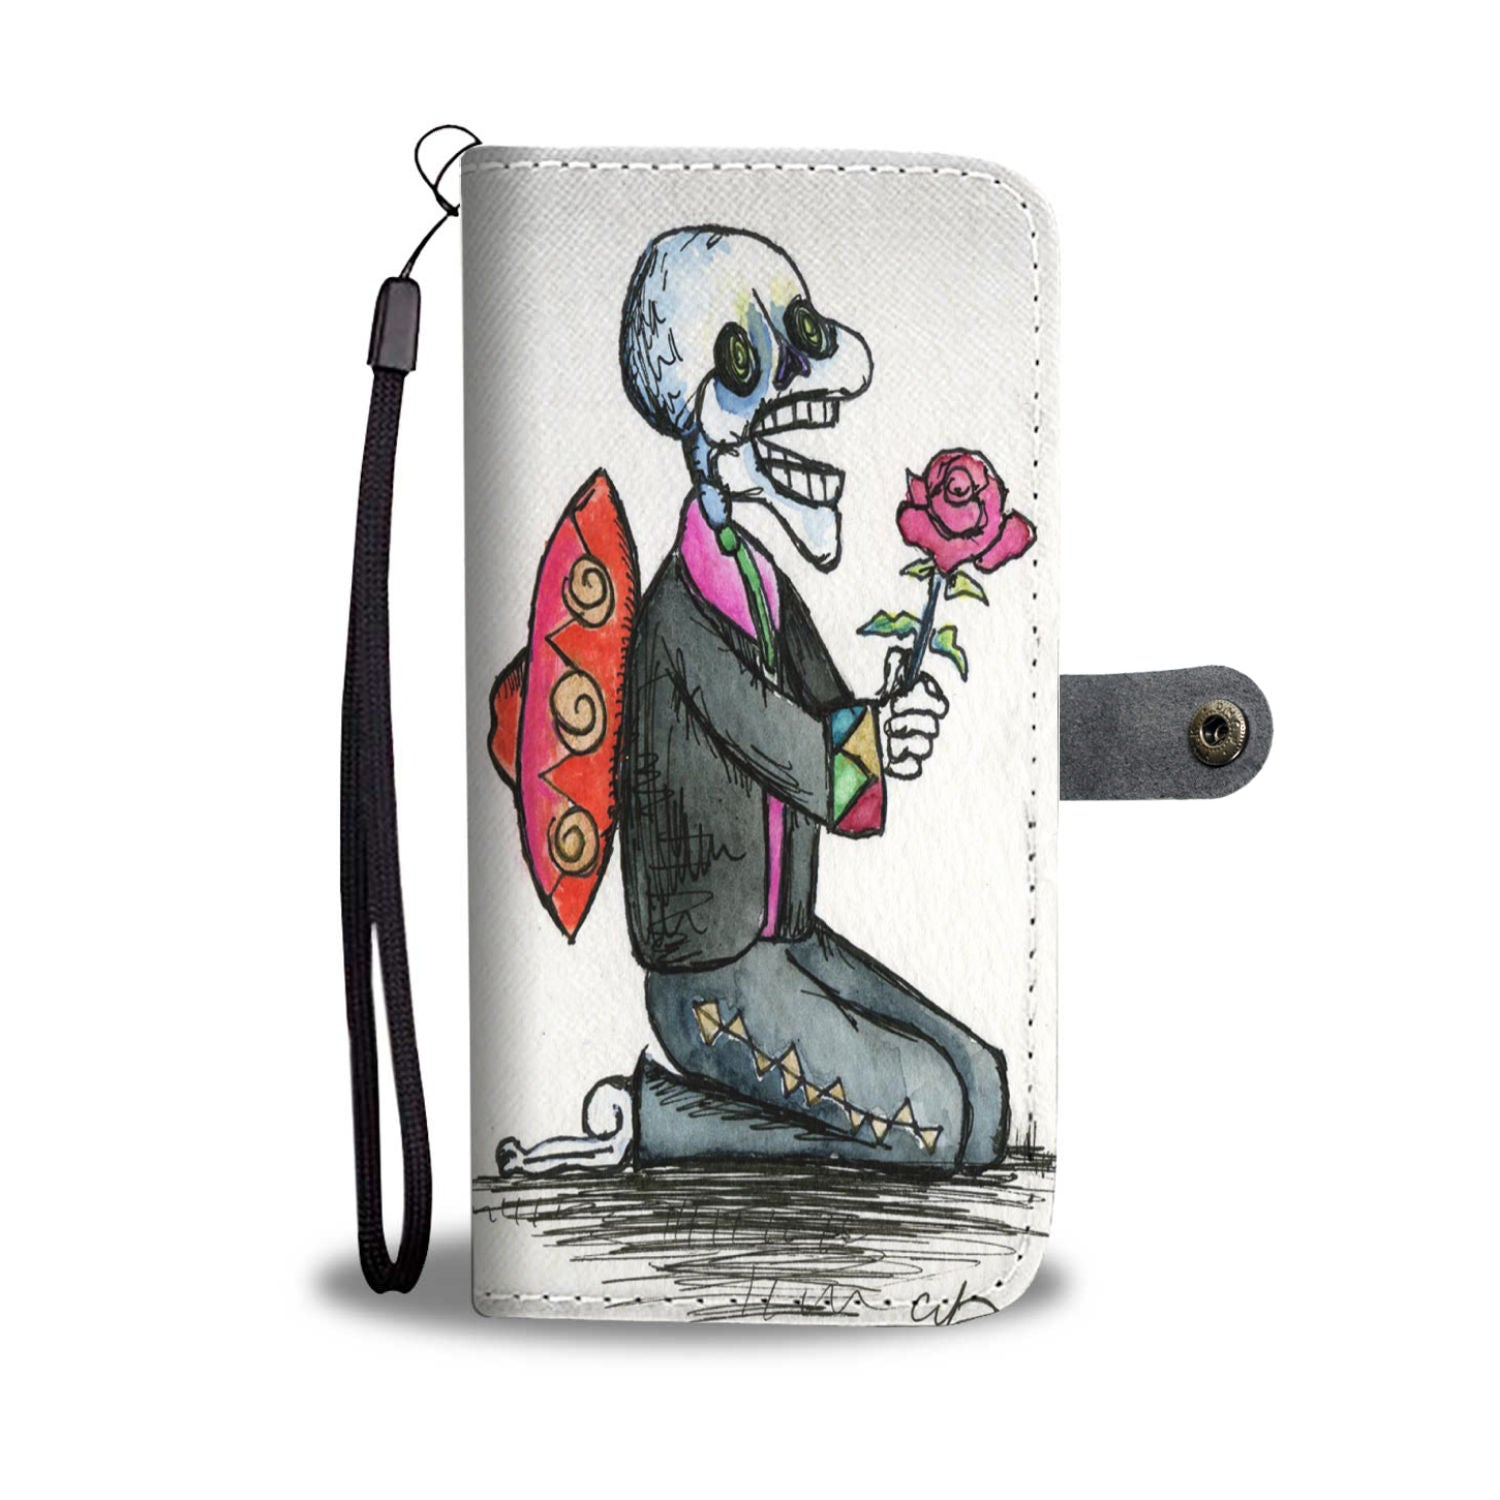 Creepy Cute Mariachi Phone Wallet Case - 70+ Phone Models Supported